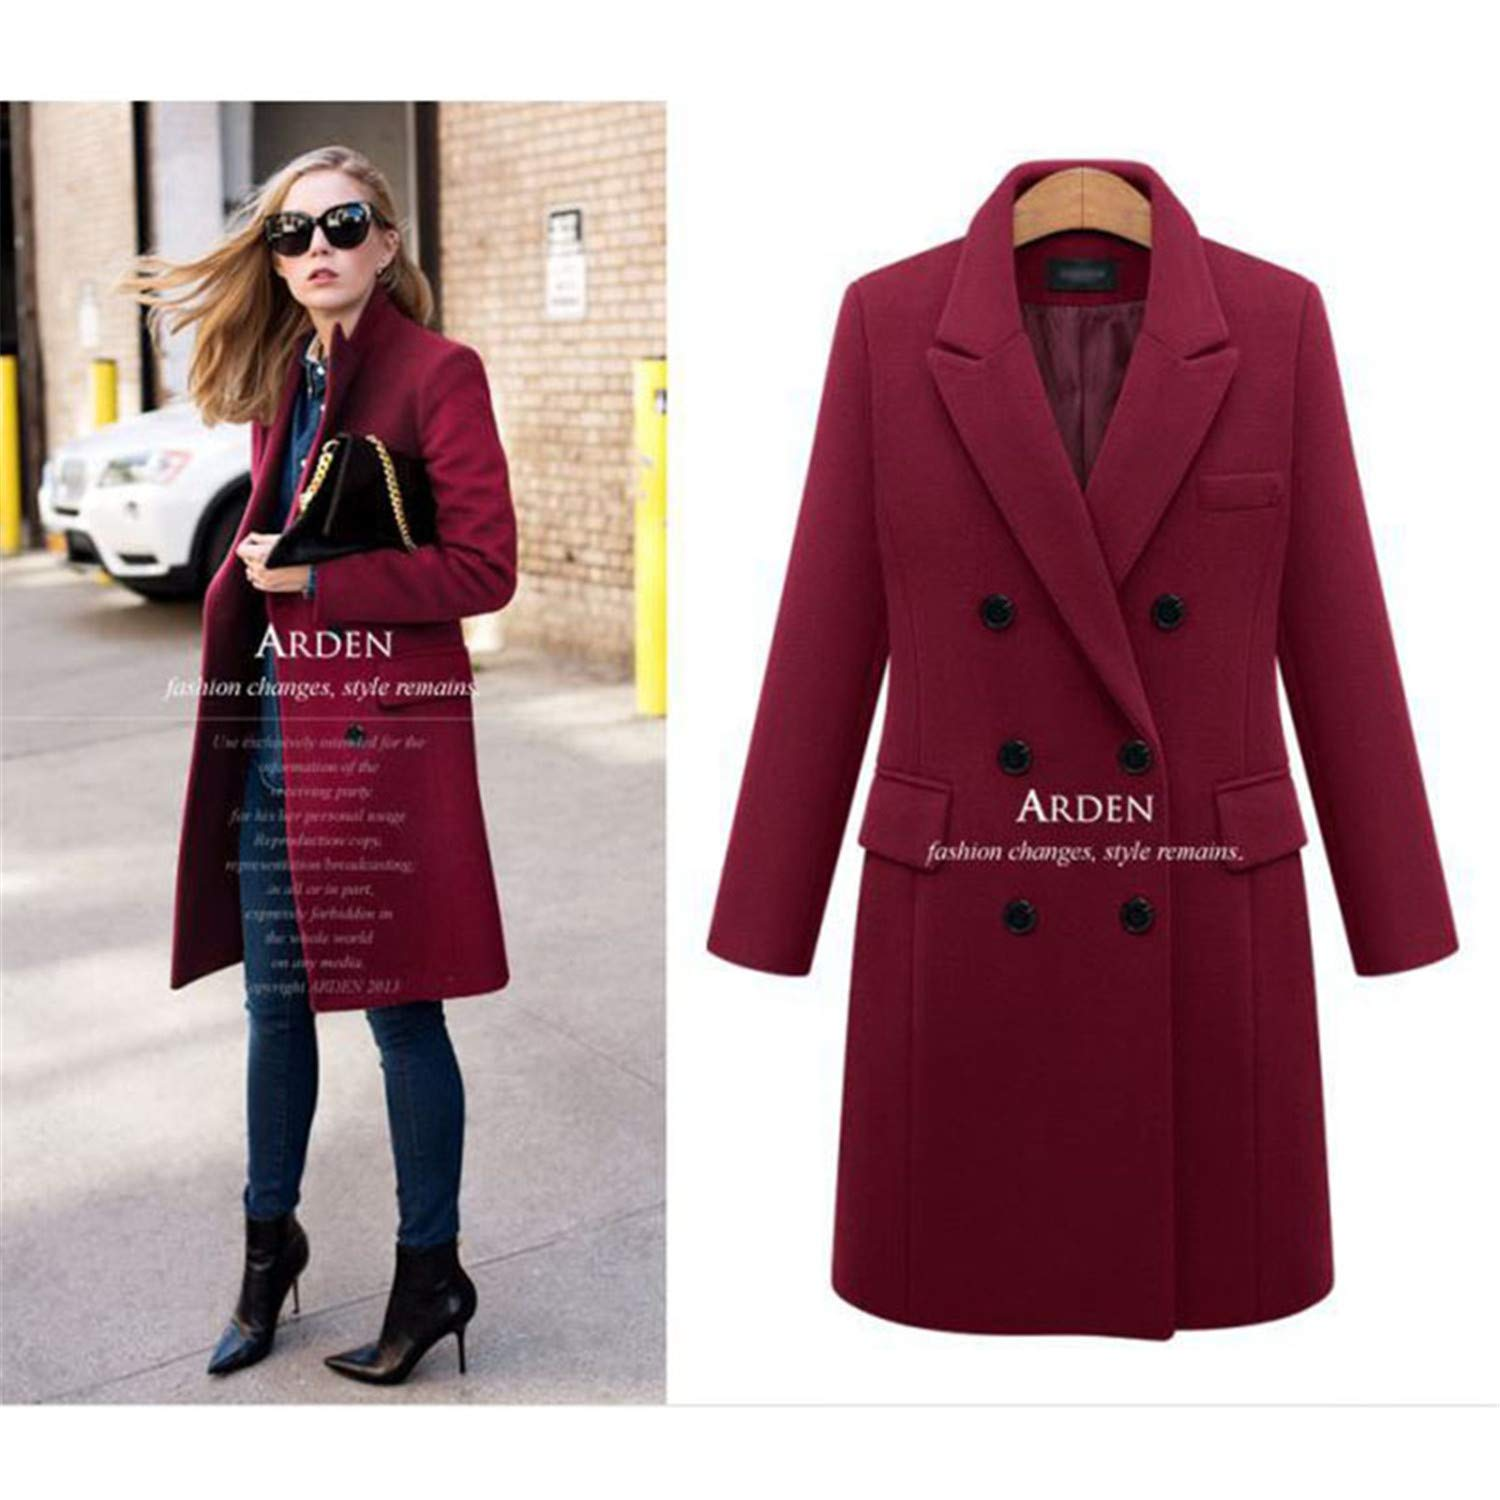 Burgundy Perfectme Outerwear Coat Women Casual Wool Solid Jackets Blazers Double Breasted Long Coat Ladies Plus Size 5XL